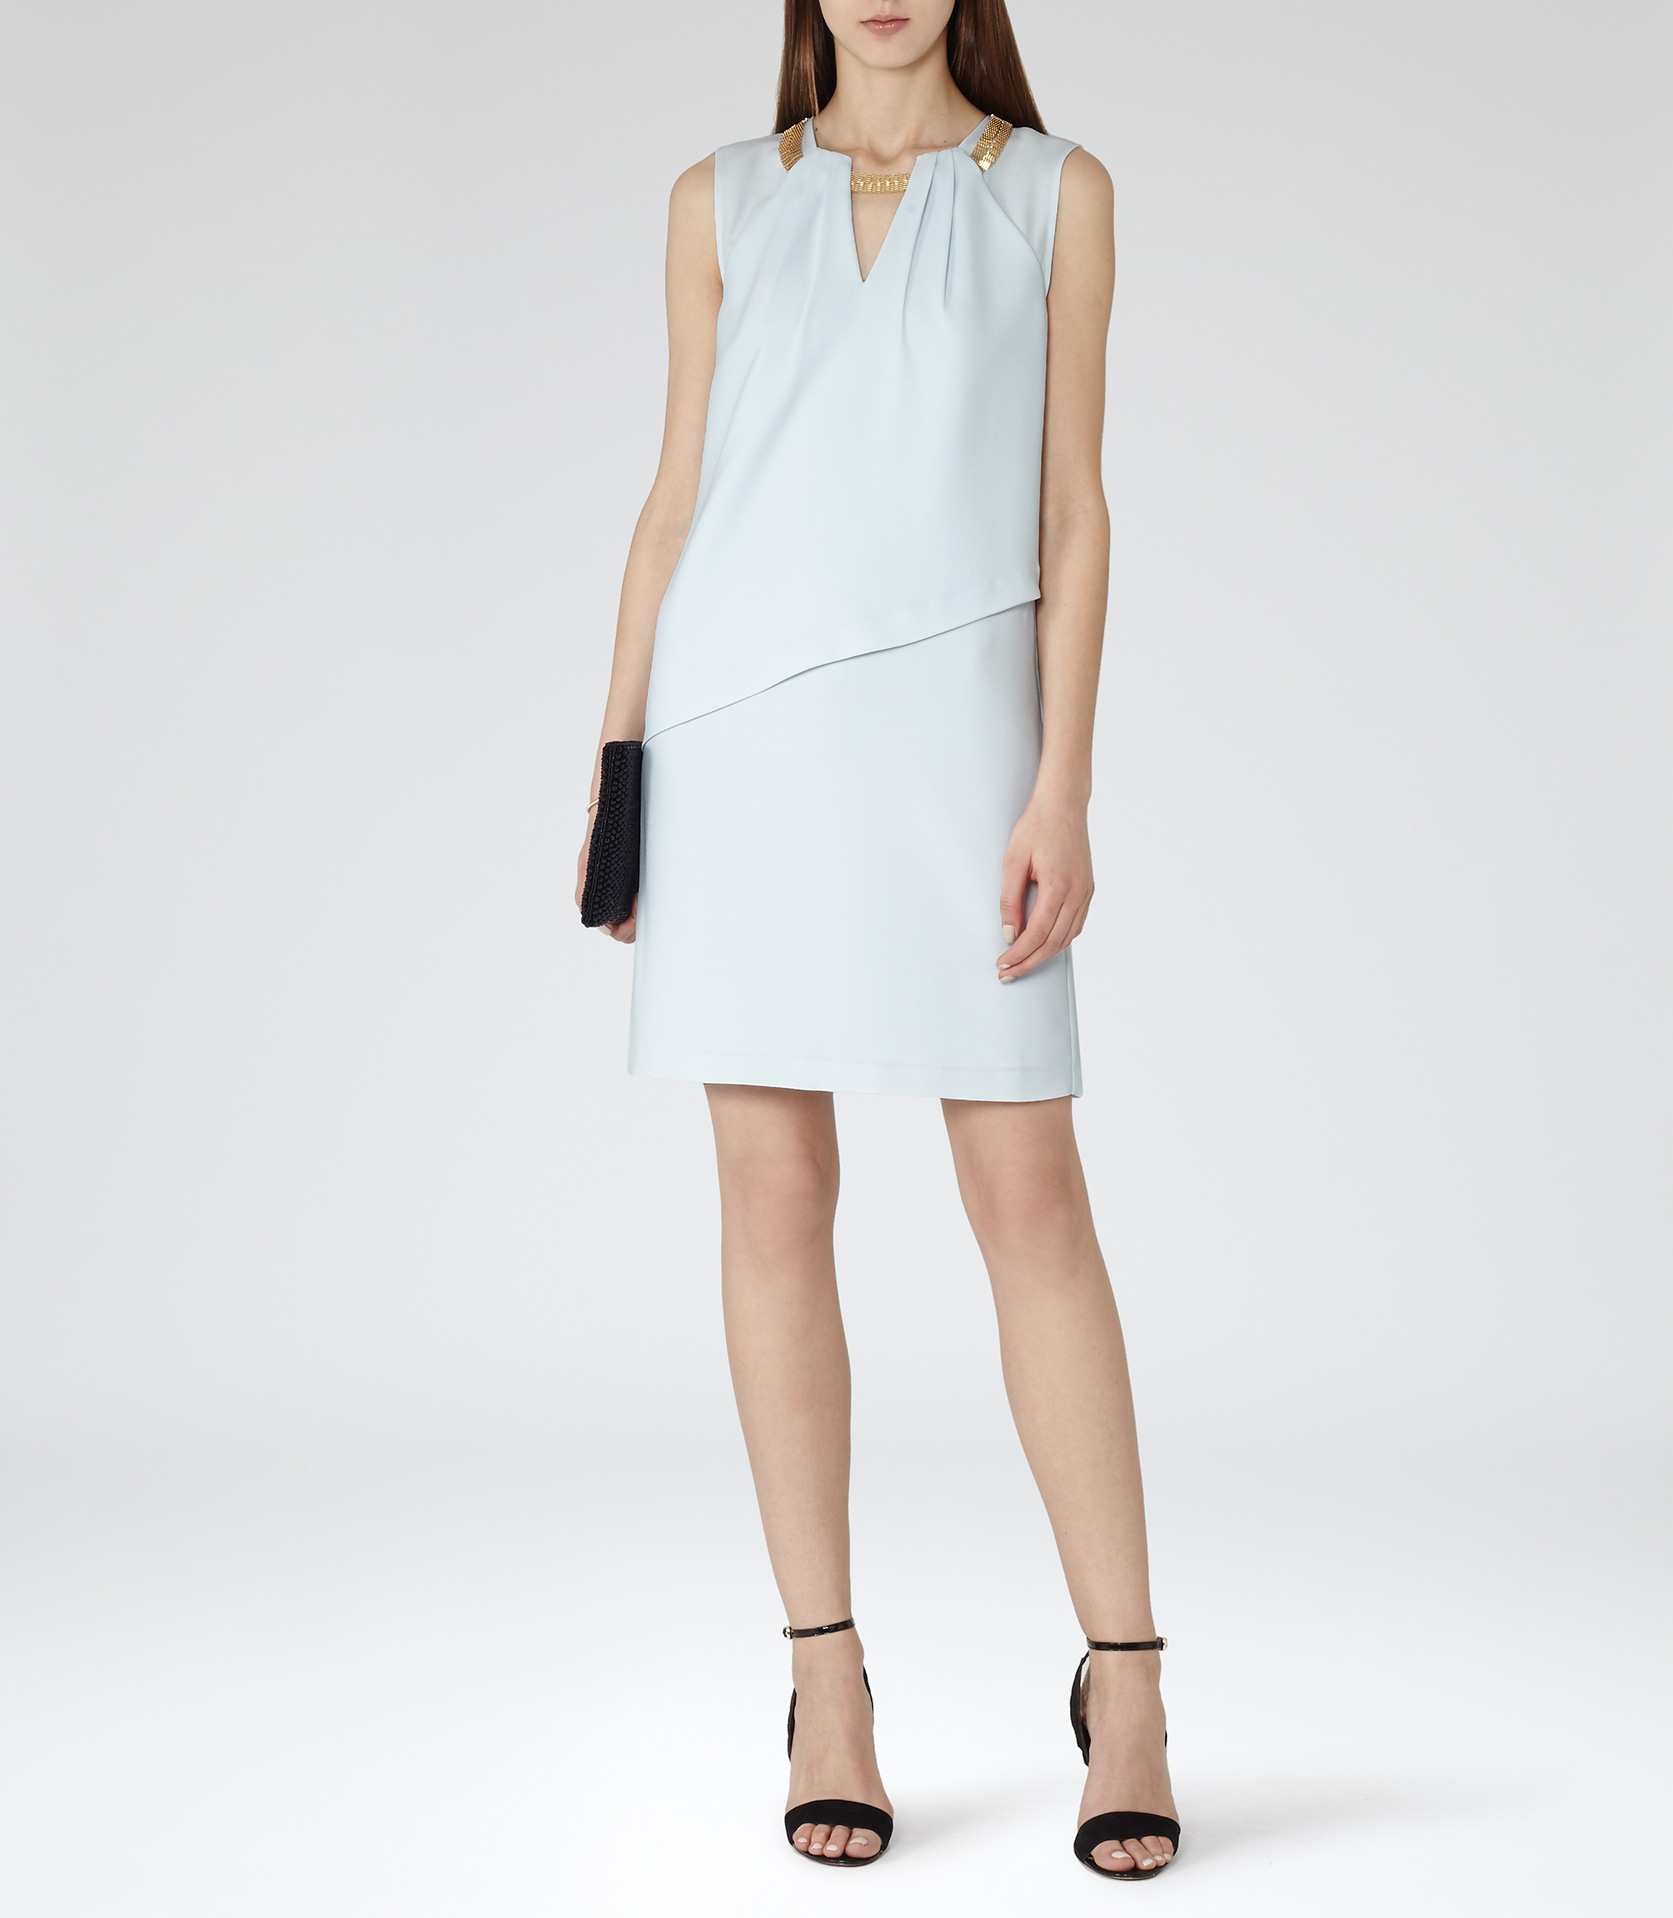 Reiss dress white and gold